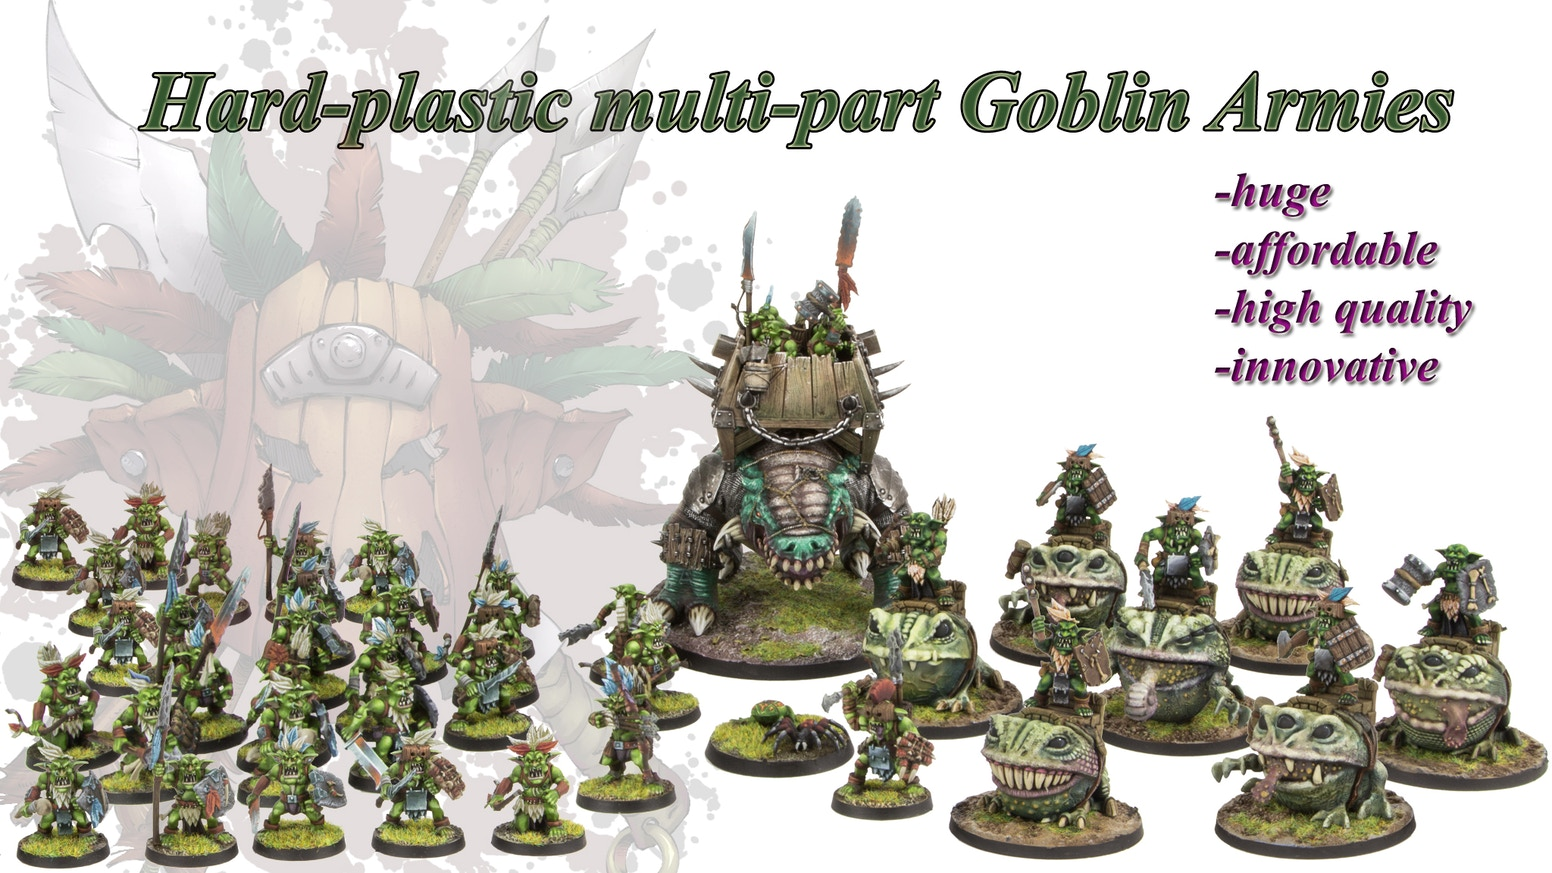 Hard-plastic Fantasy & Sci-Fi Goblin huge and affordable tabletop armies.